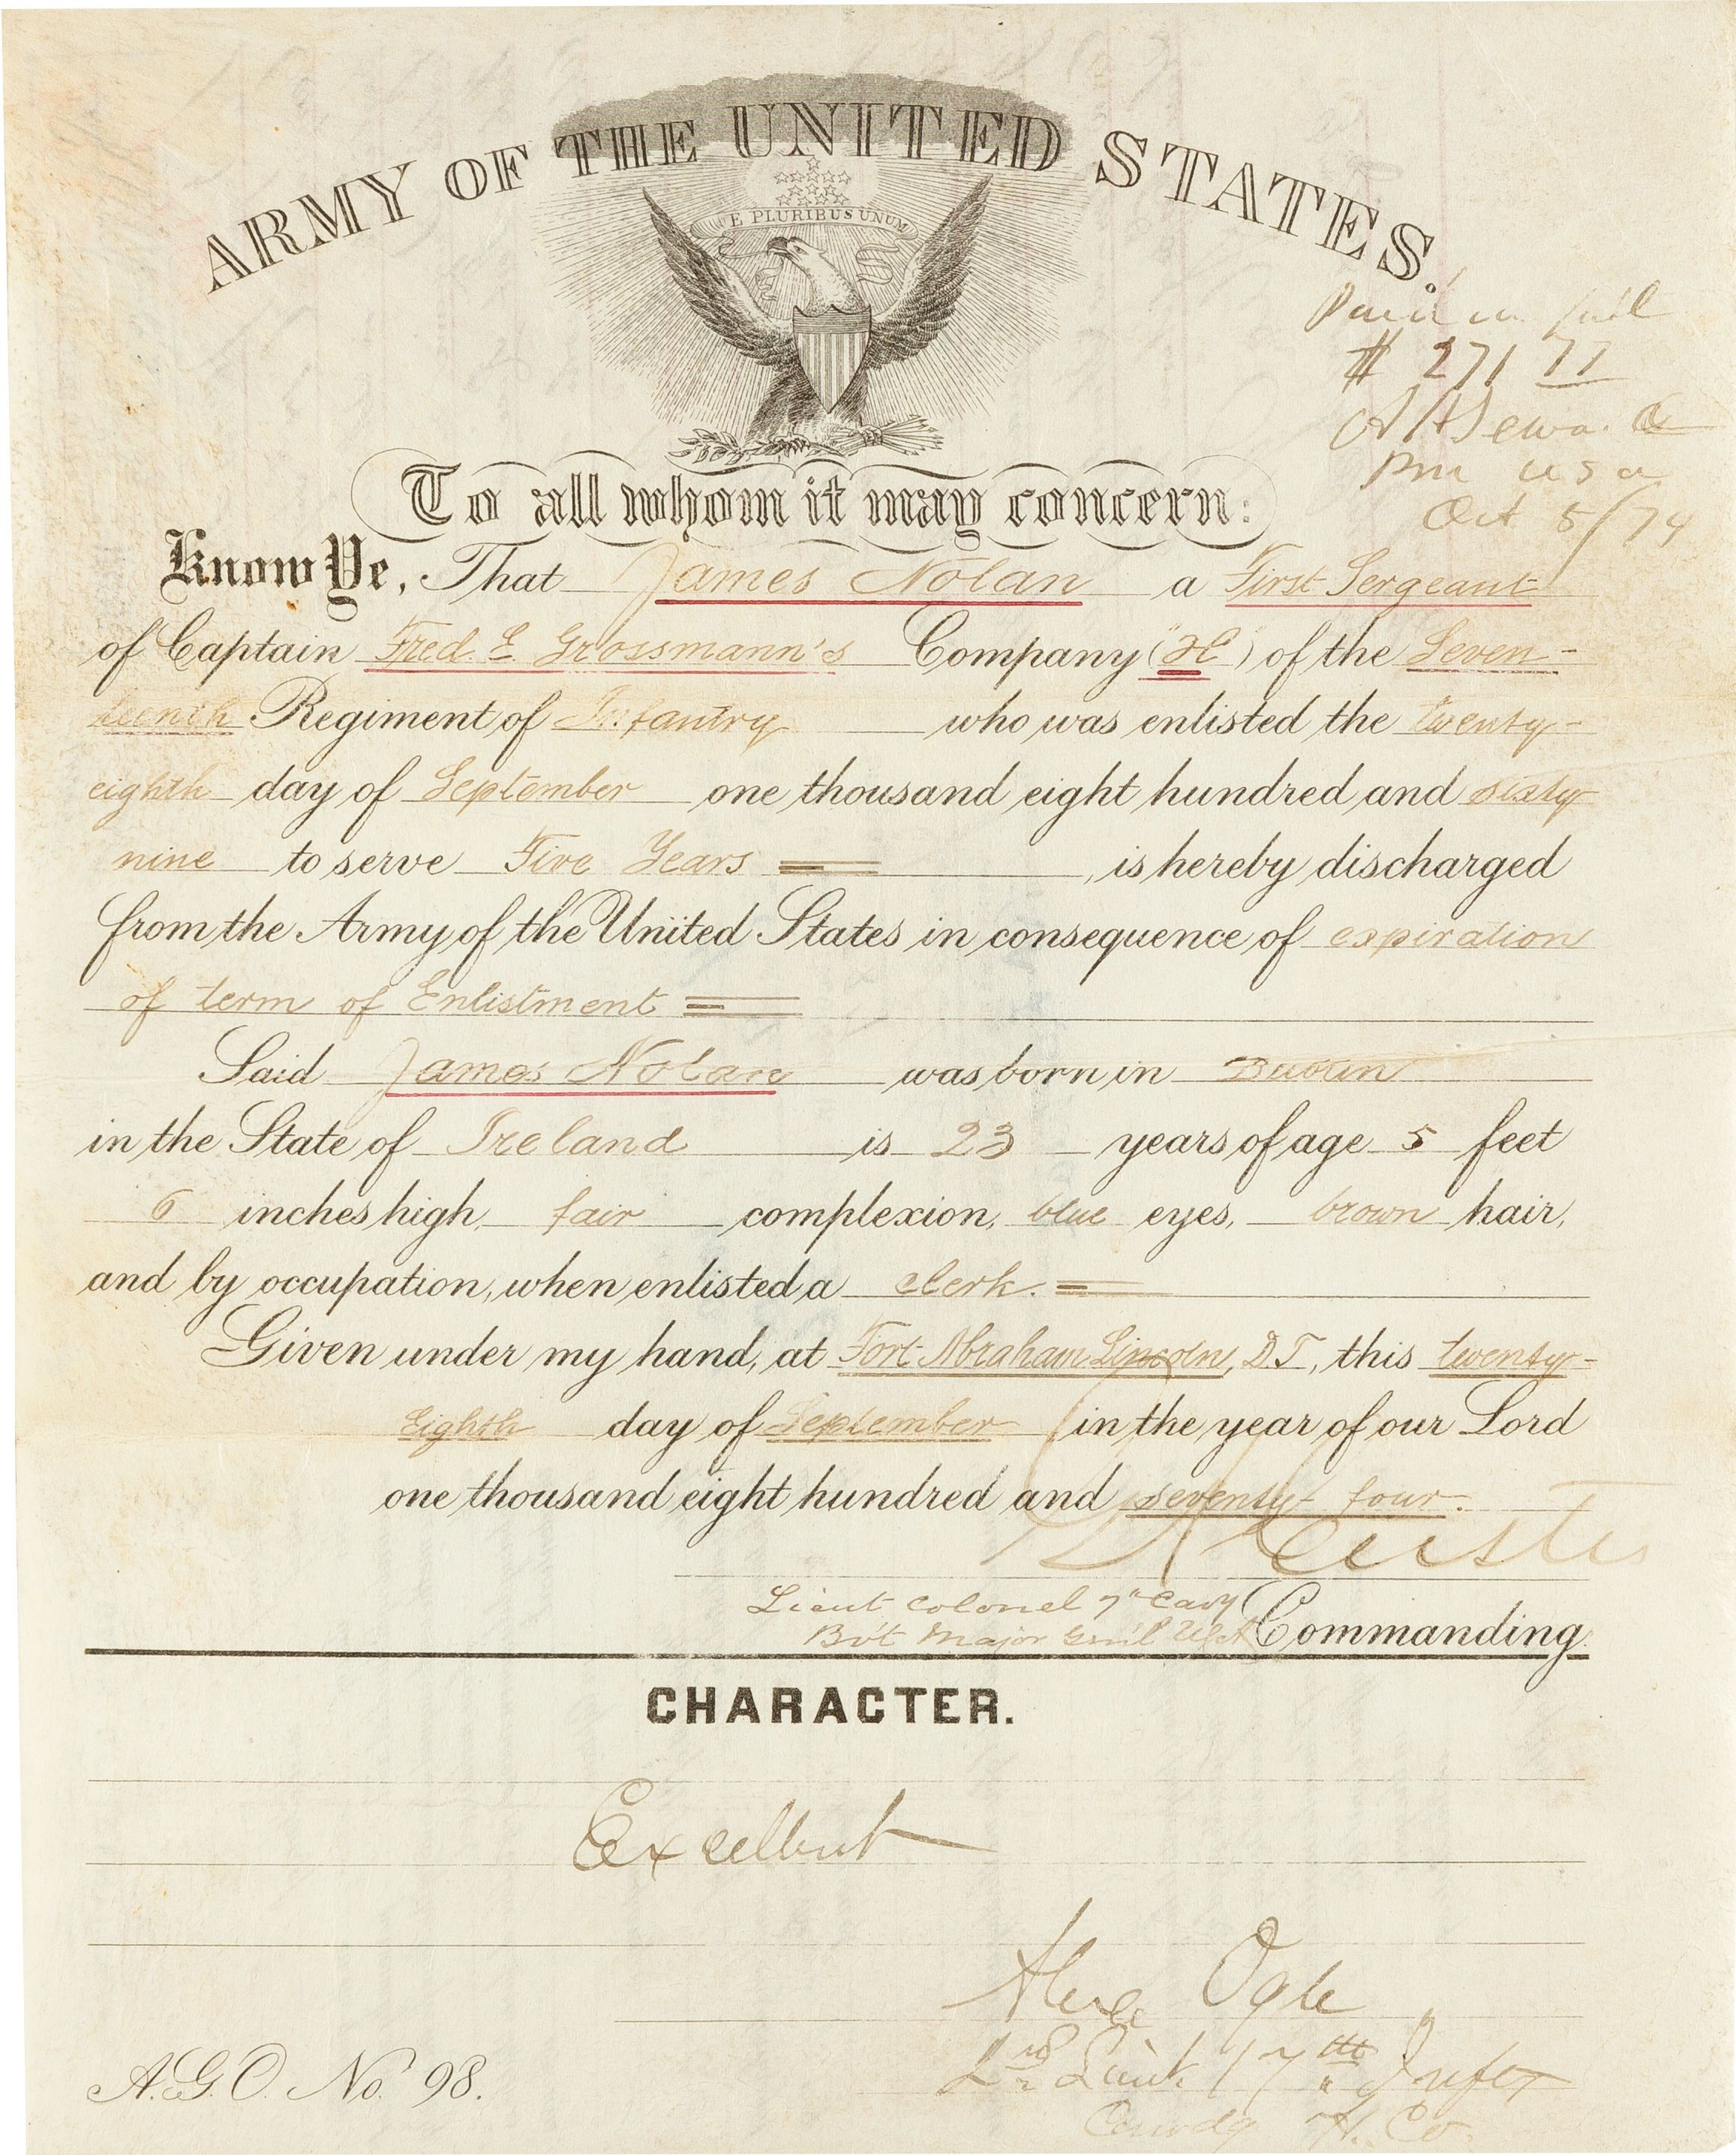 The Us Army Honorable Discharge Certificate Issued To James Nolan